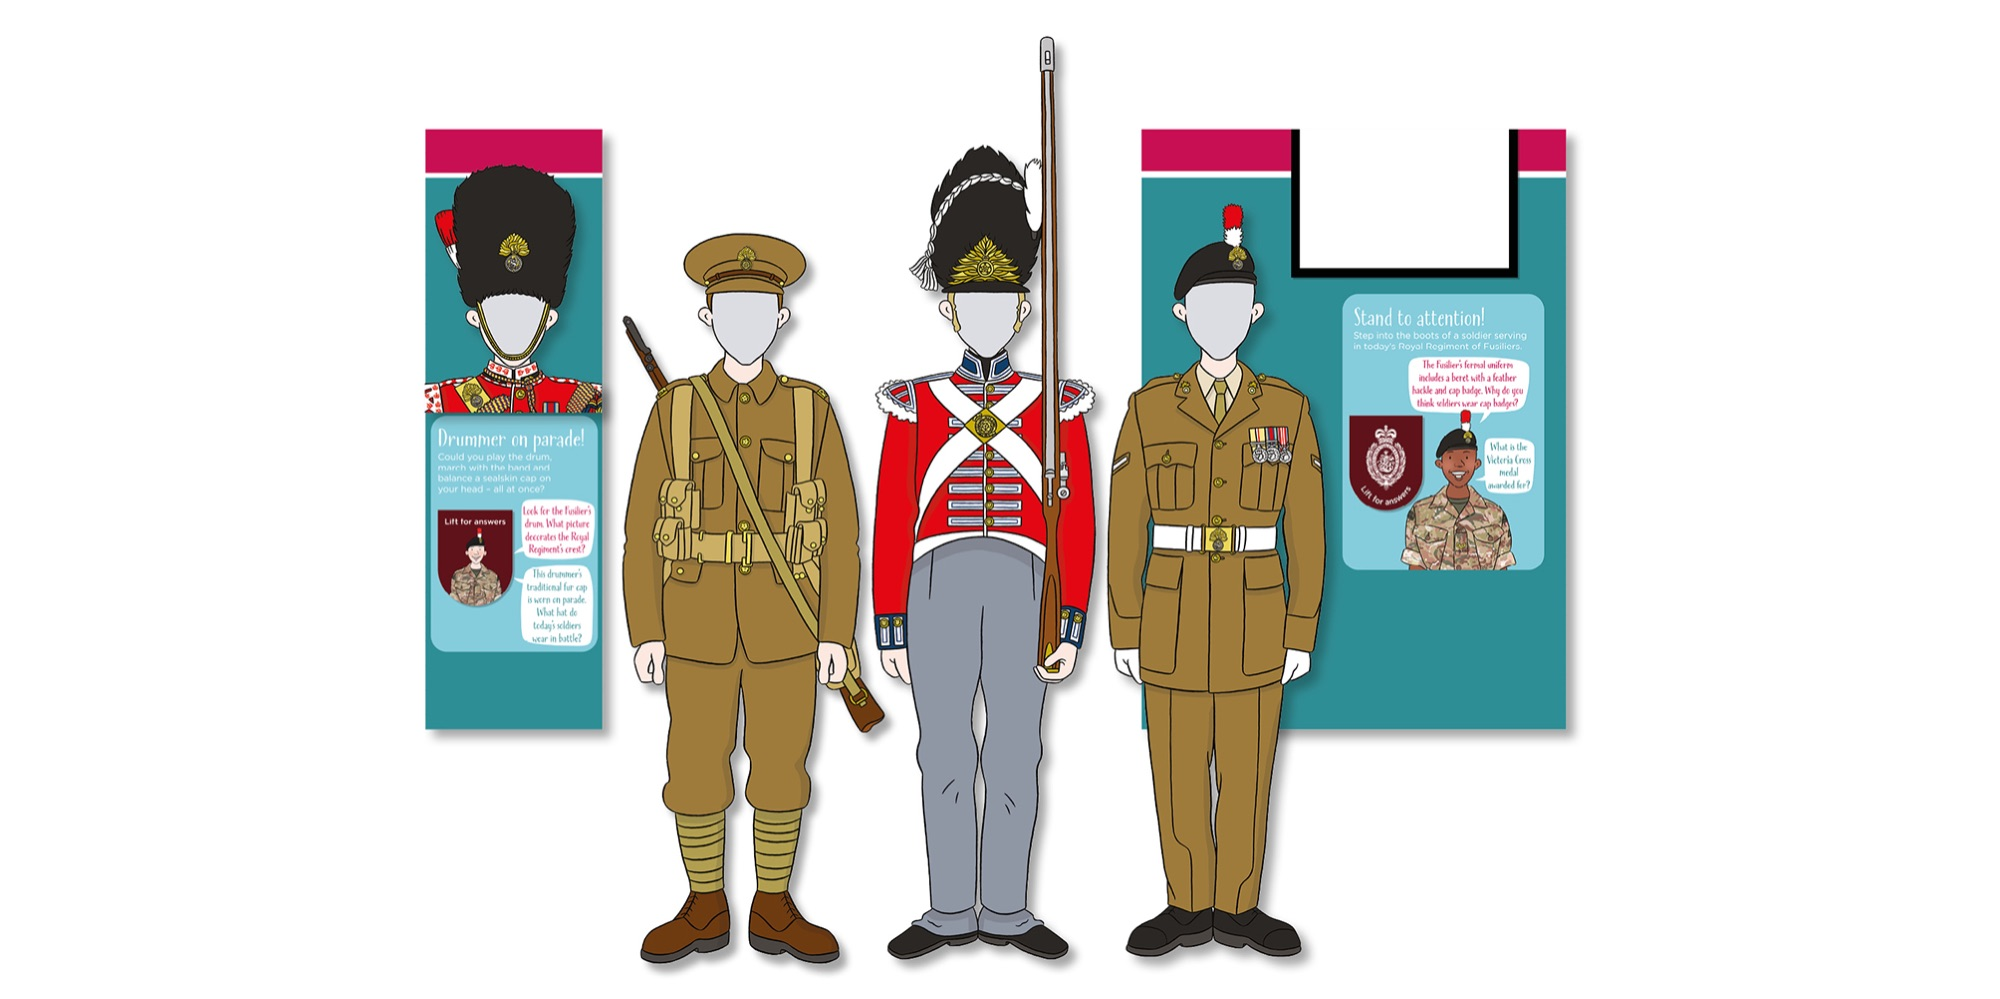 Blackbird Publishing Fusilier Museum Children's gallery display interactive panels